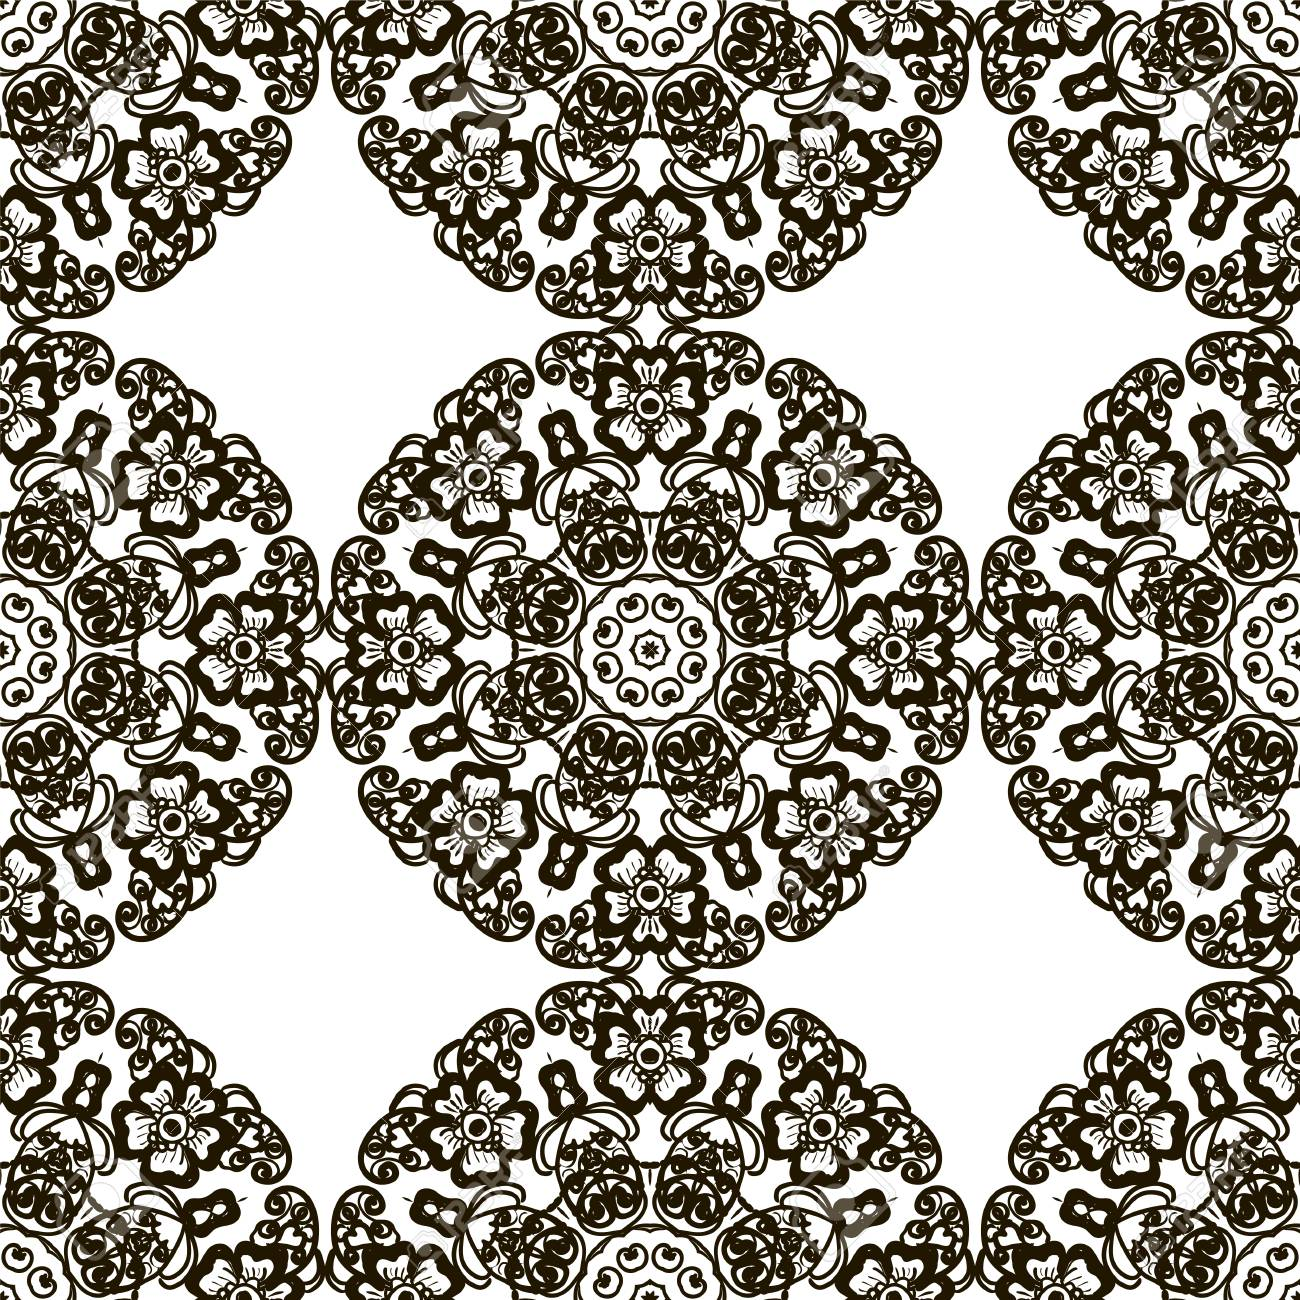 1300x1300 Round Henna Mehendi Drawing Mandalas Drawn Seamless Pattern